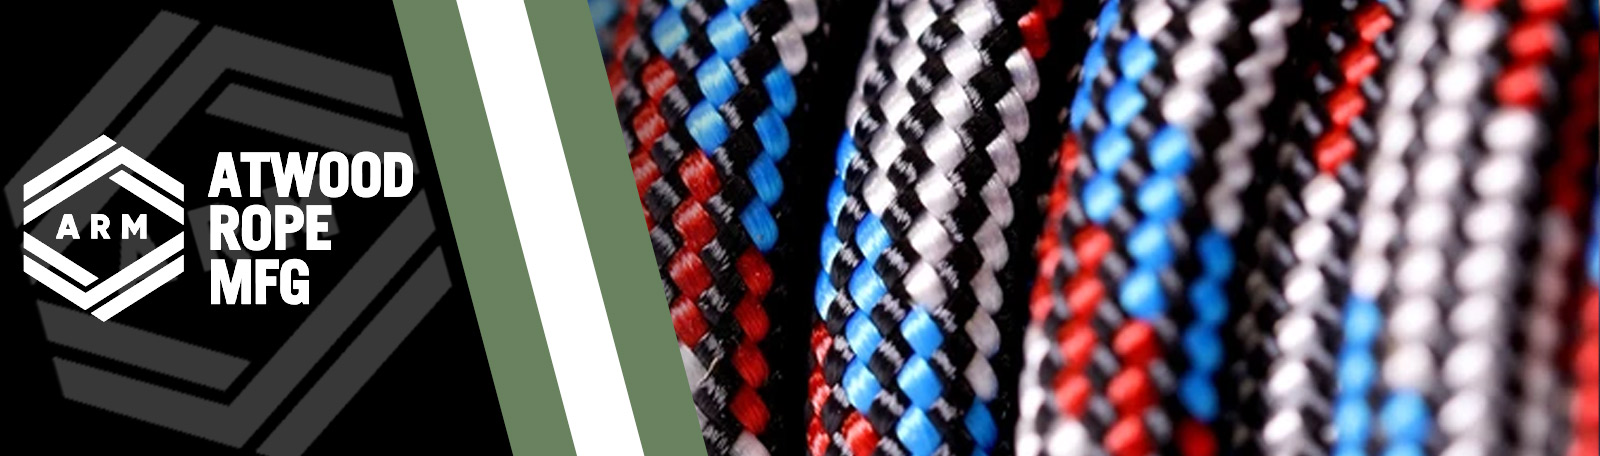 Brands - Atwood Rope Category